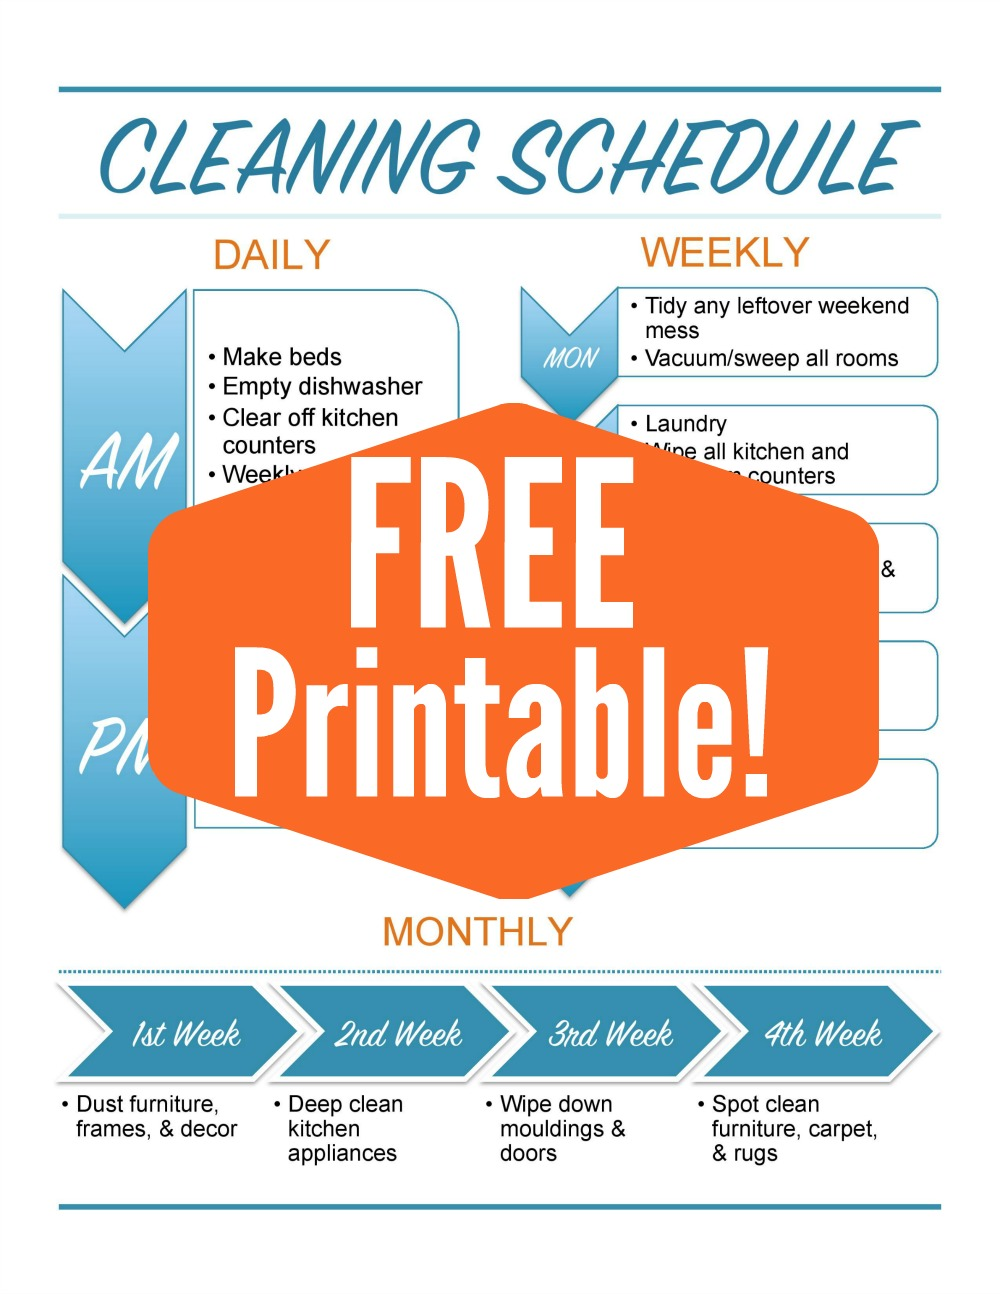 Feel like your home is a constant mess? I've got a free cleaning schedule printable with Daily, Weekly, and Monthly chores on the blog today!